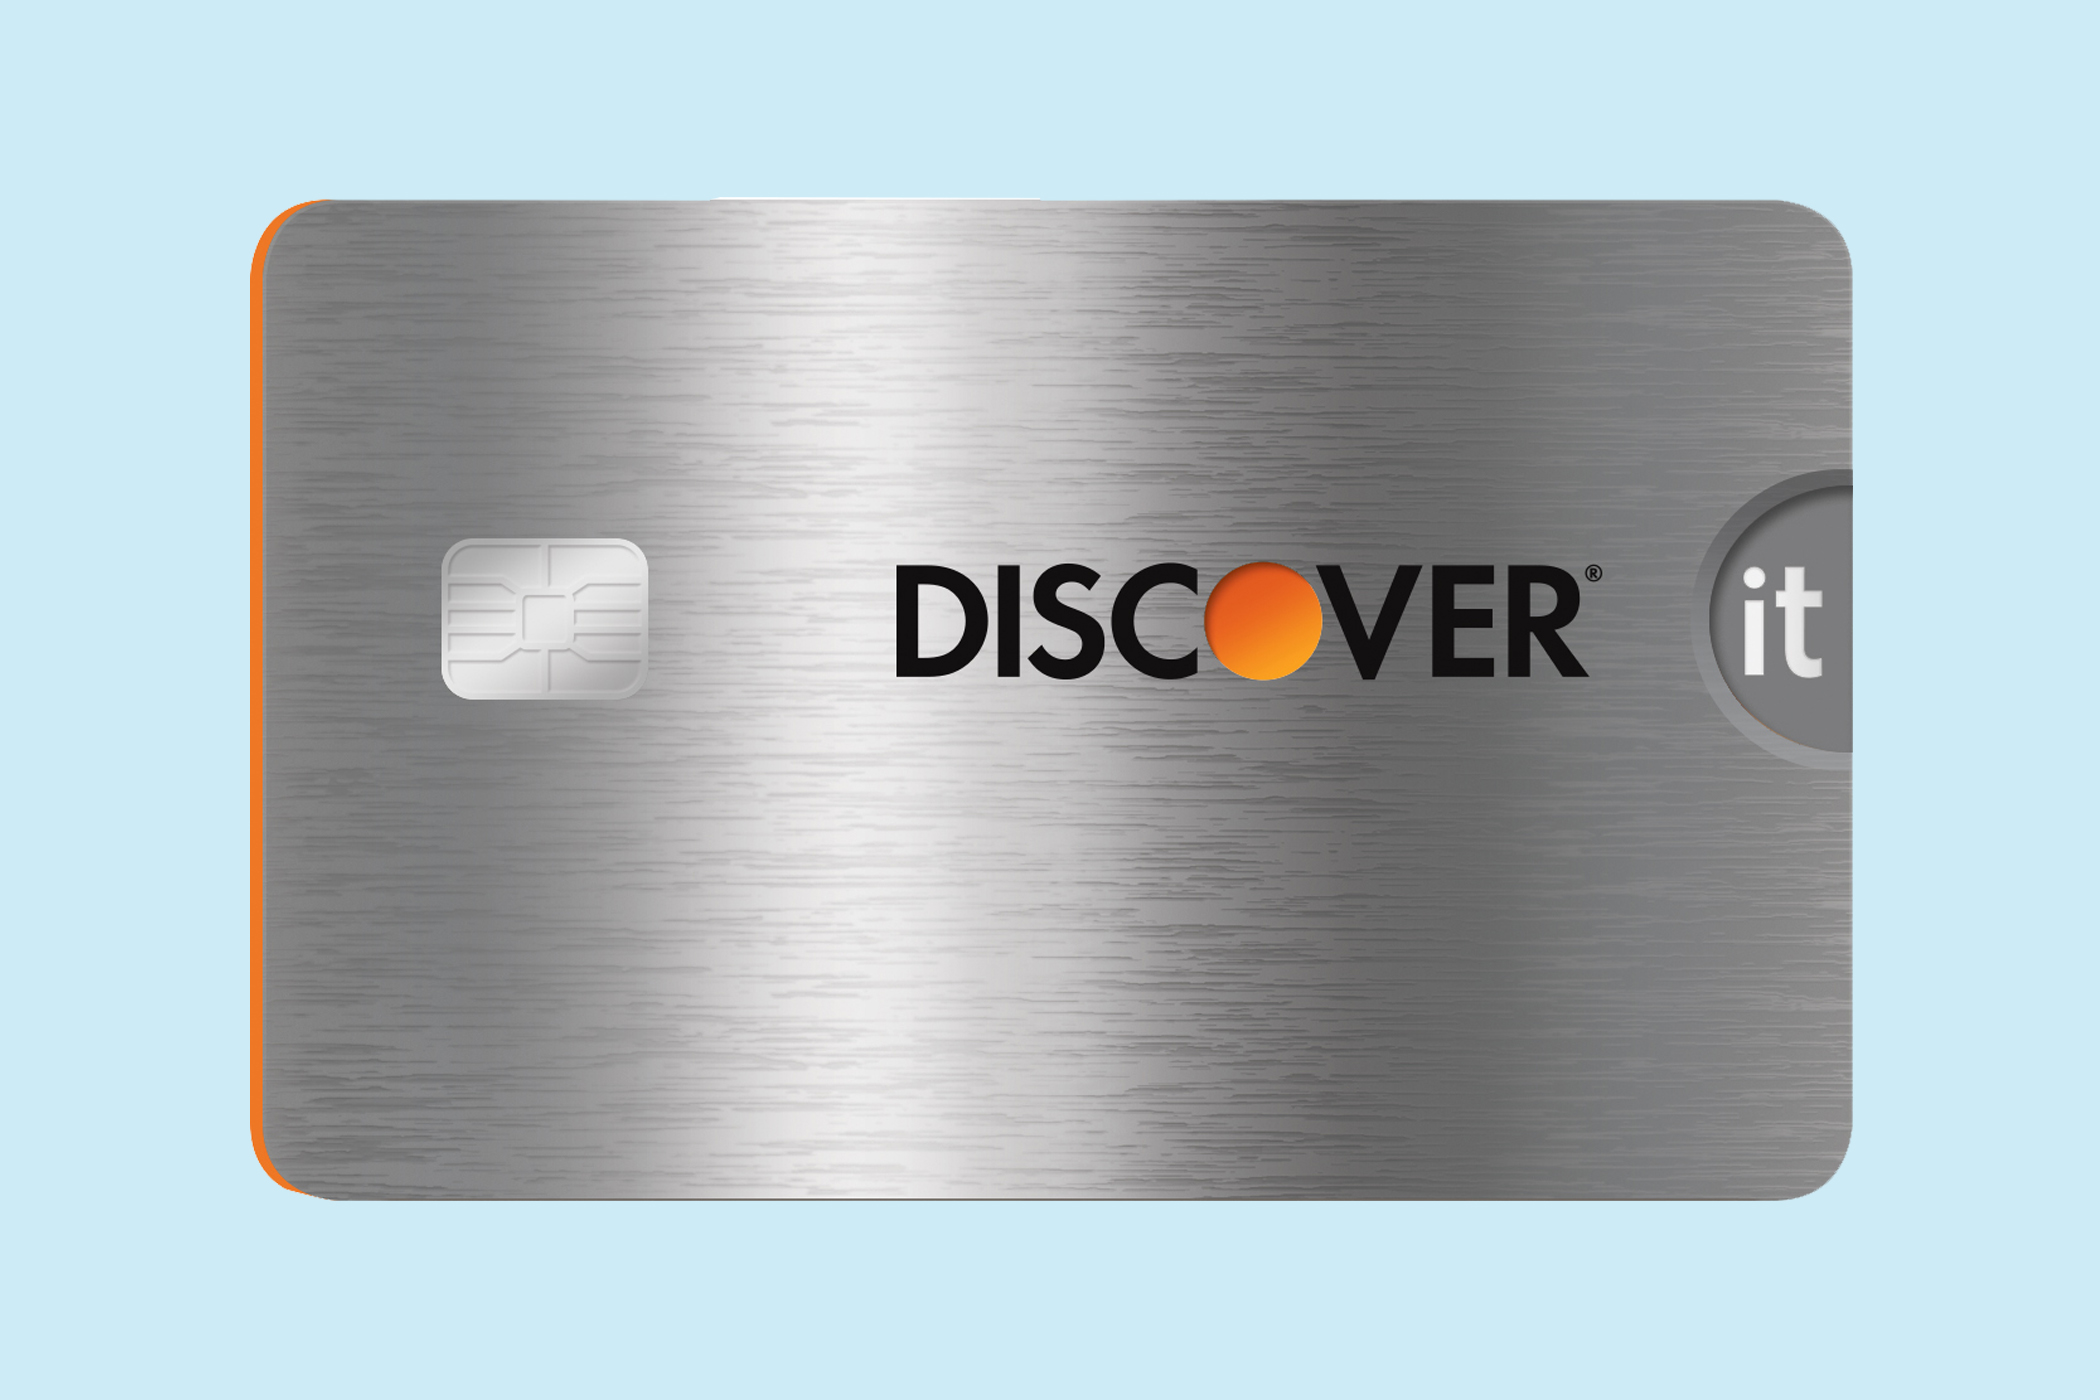 Discover Credit Card: Should I Get the Discover It Secured Card